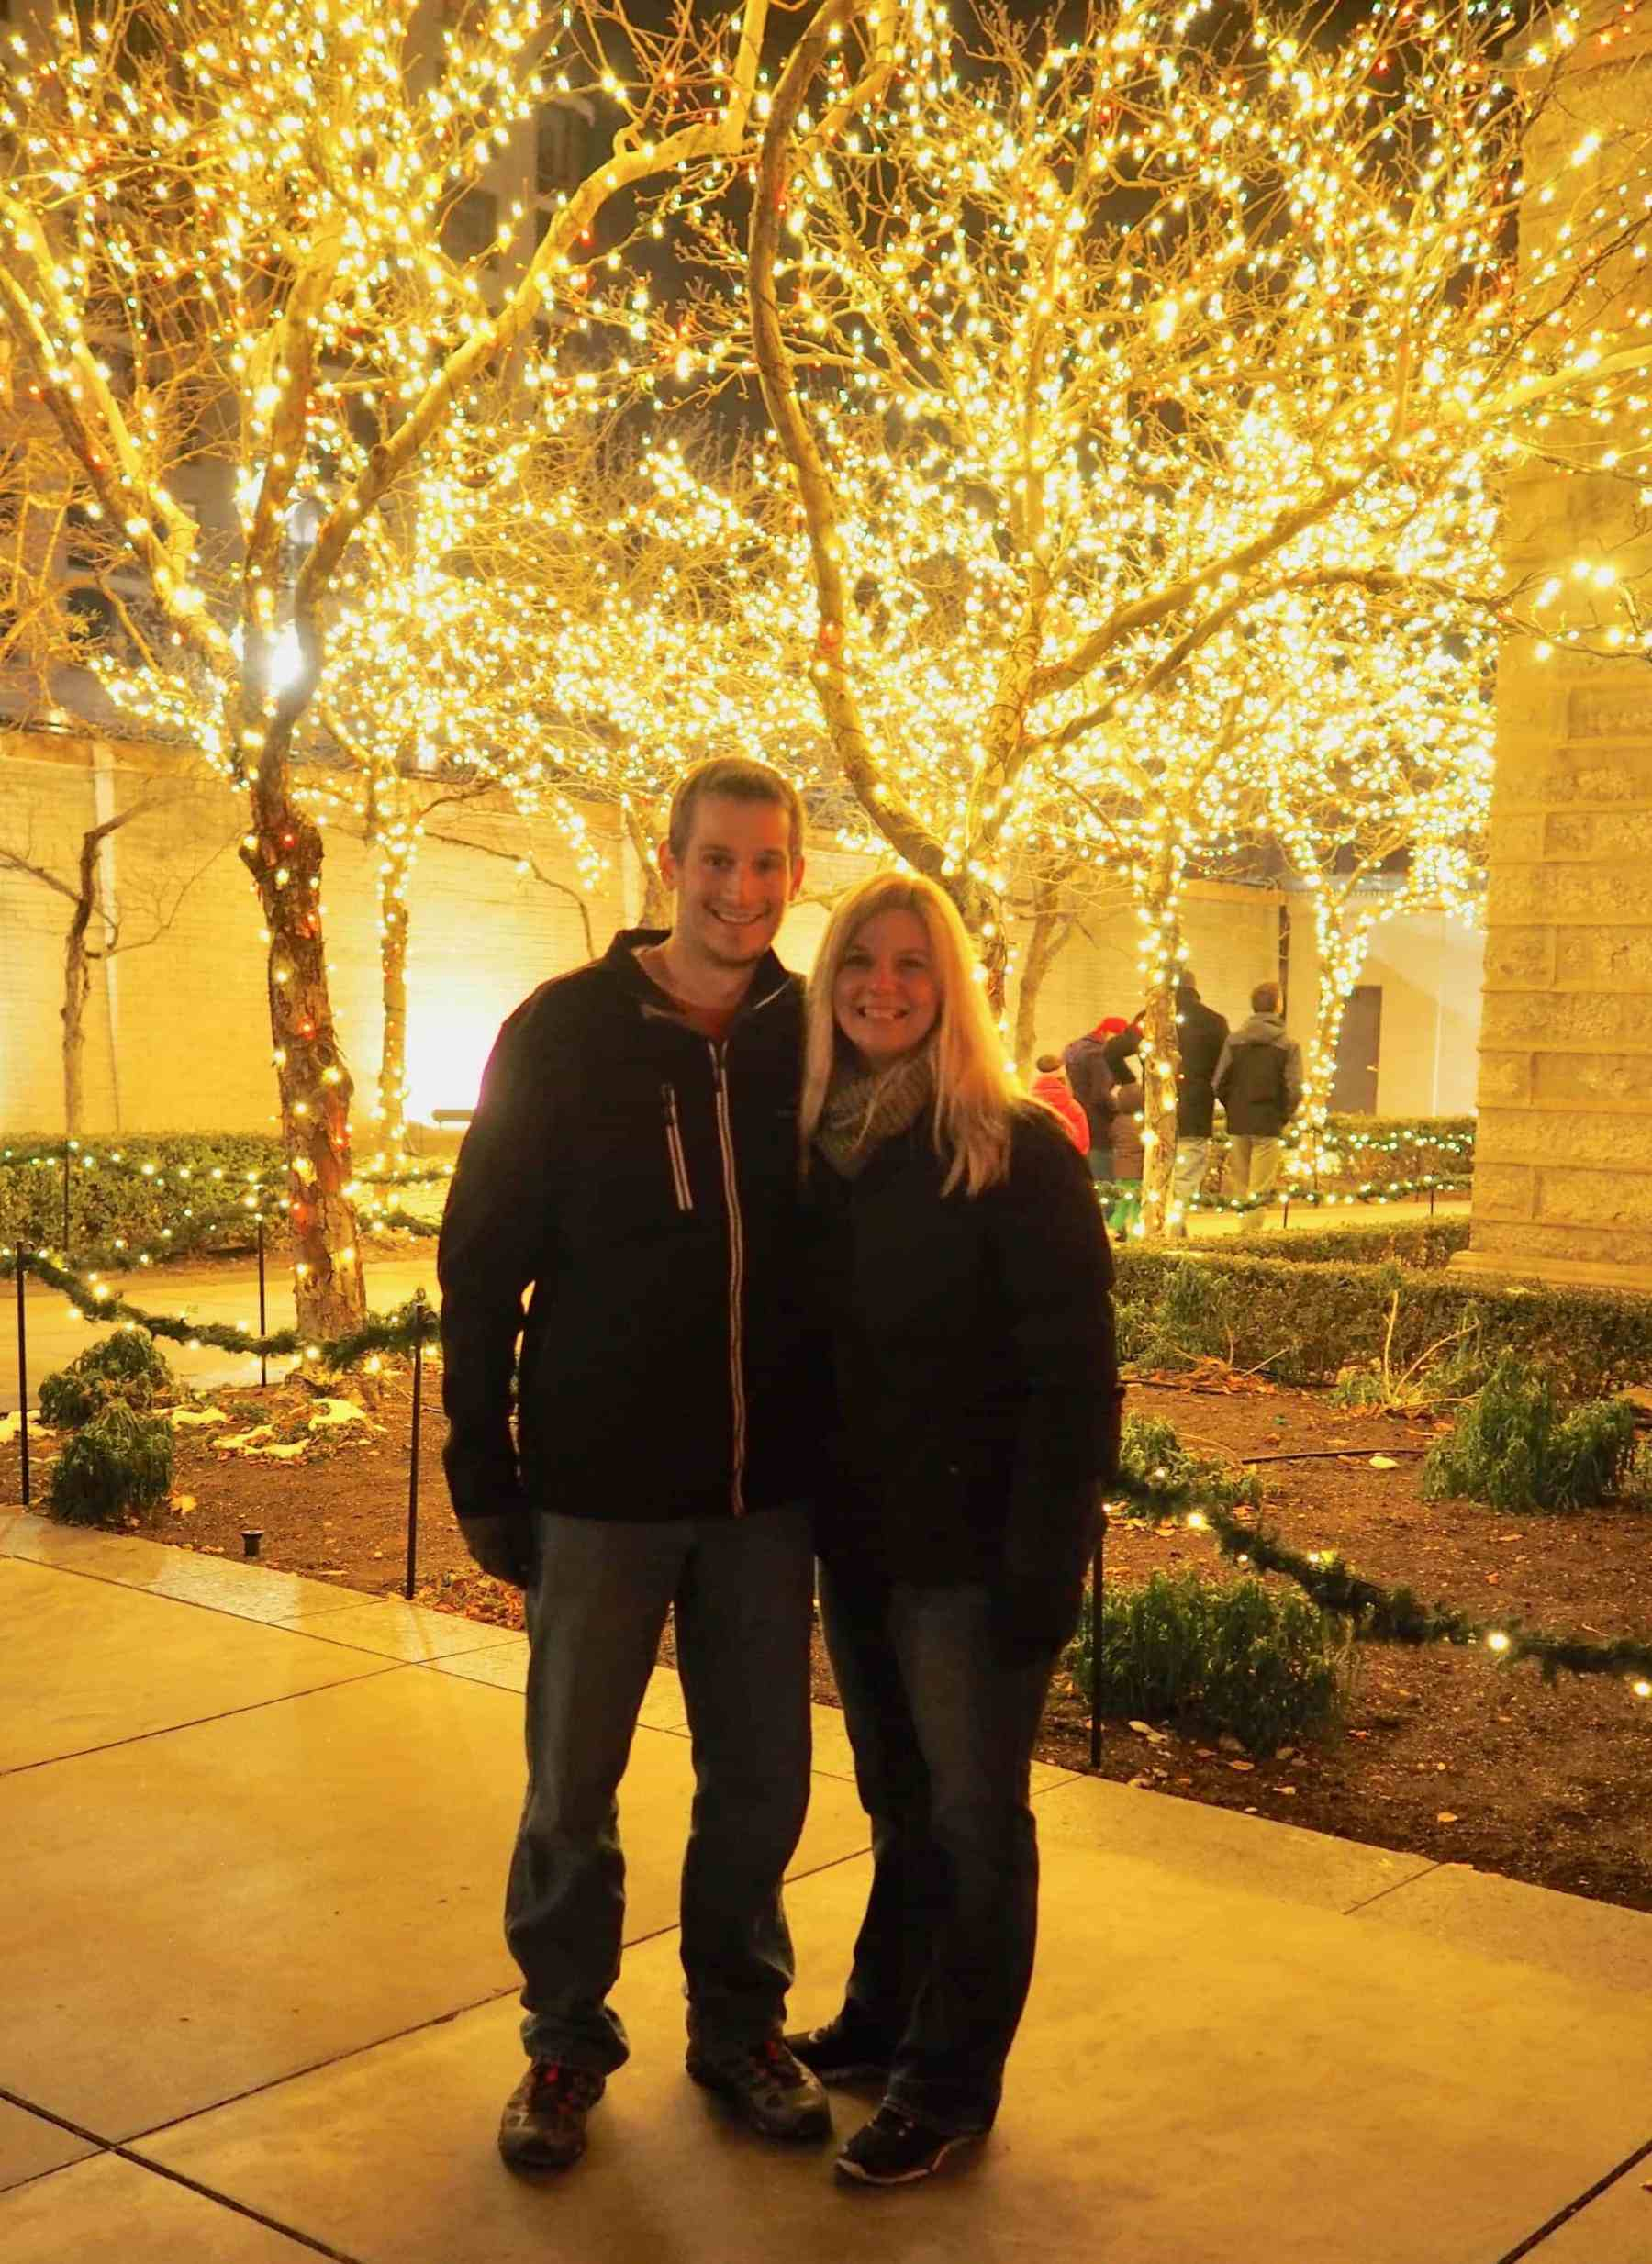 Great night to stroll around Temple Square